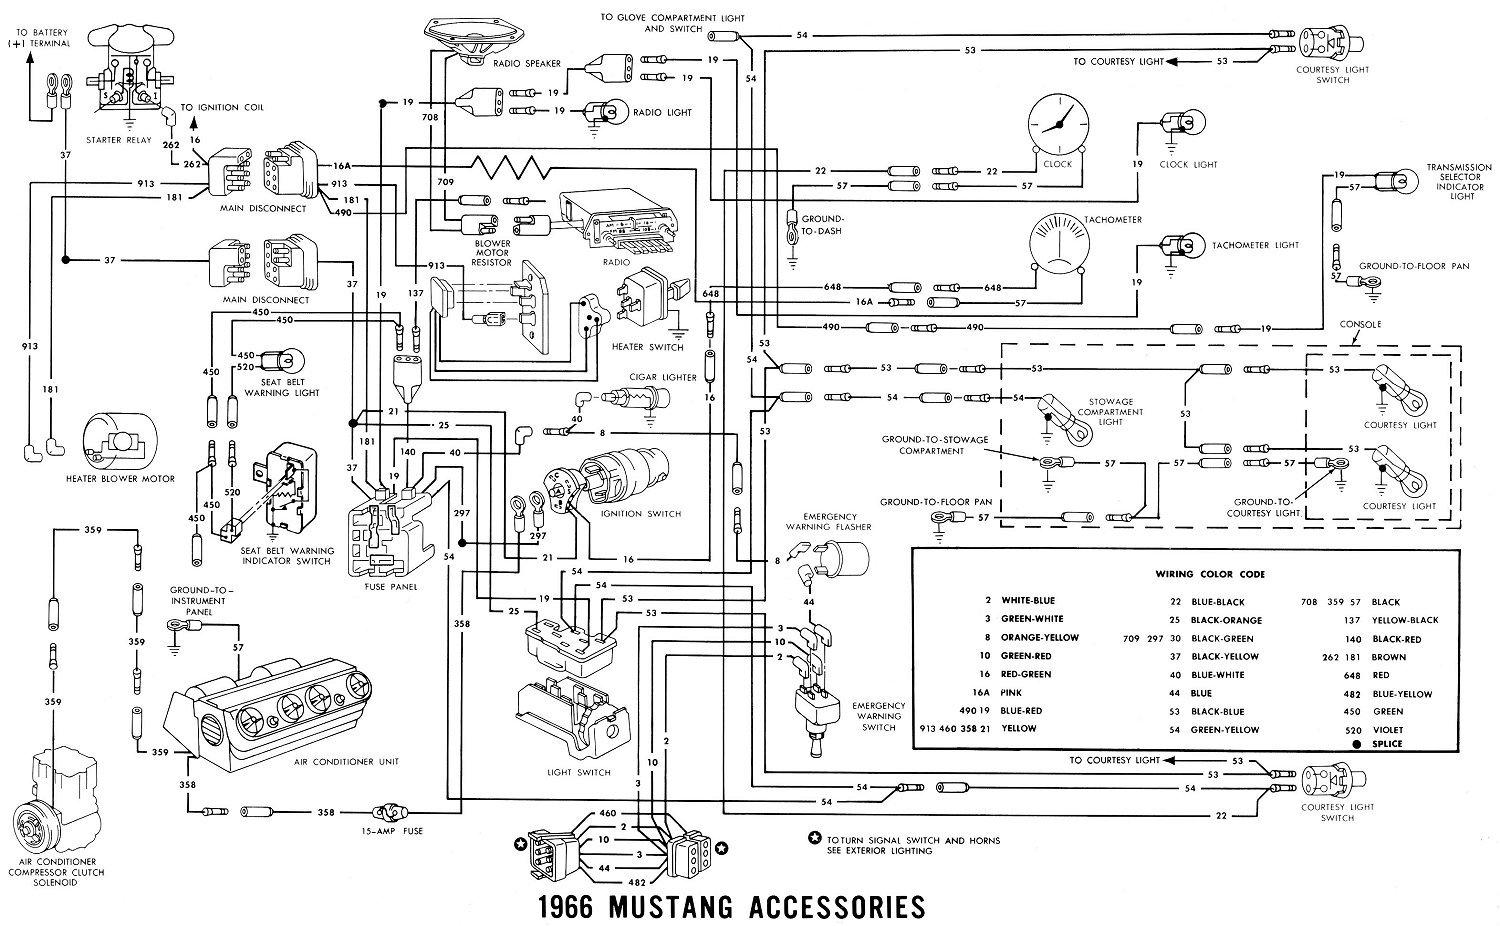 66acces1 vintage mustang wiring diagrams 1970 mustang wiring diagram at soozxer.org